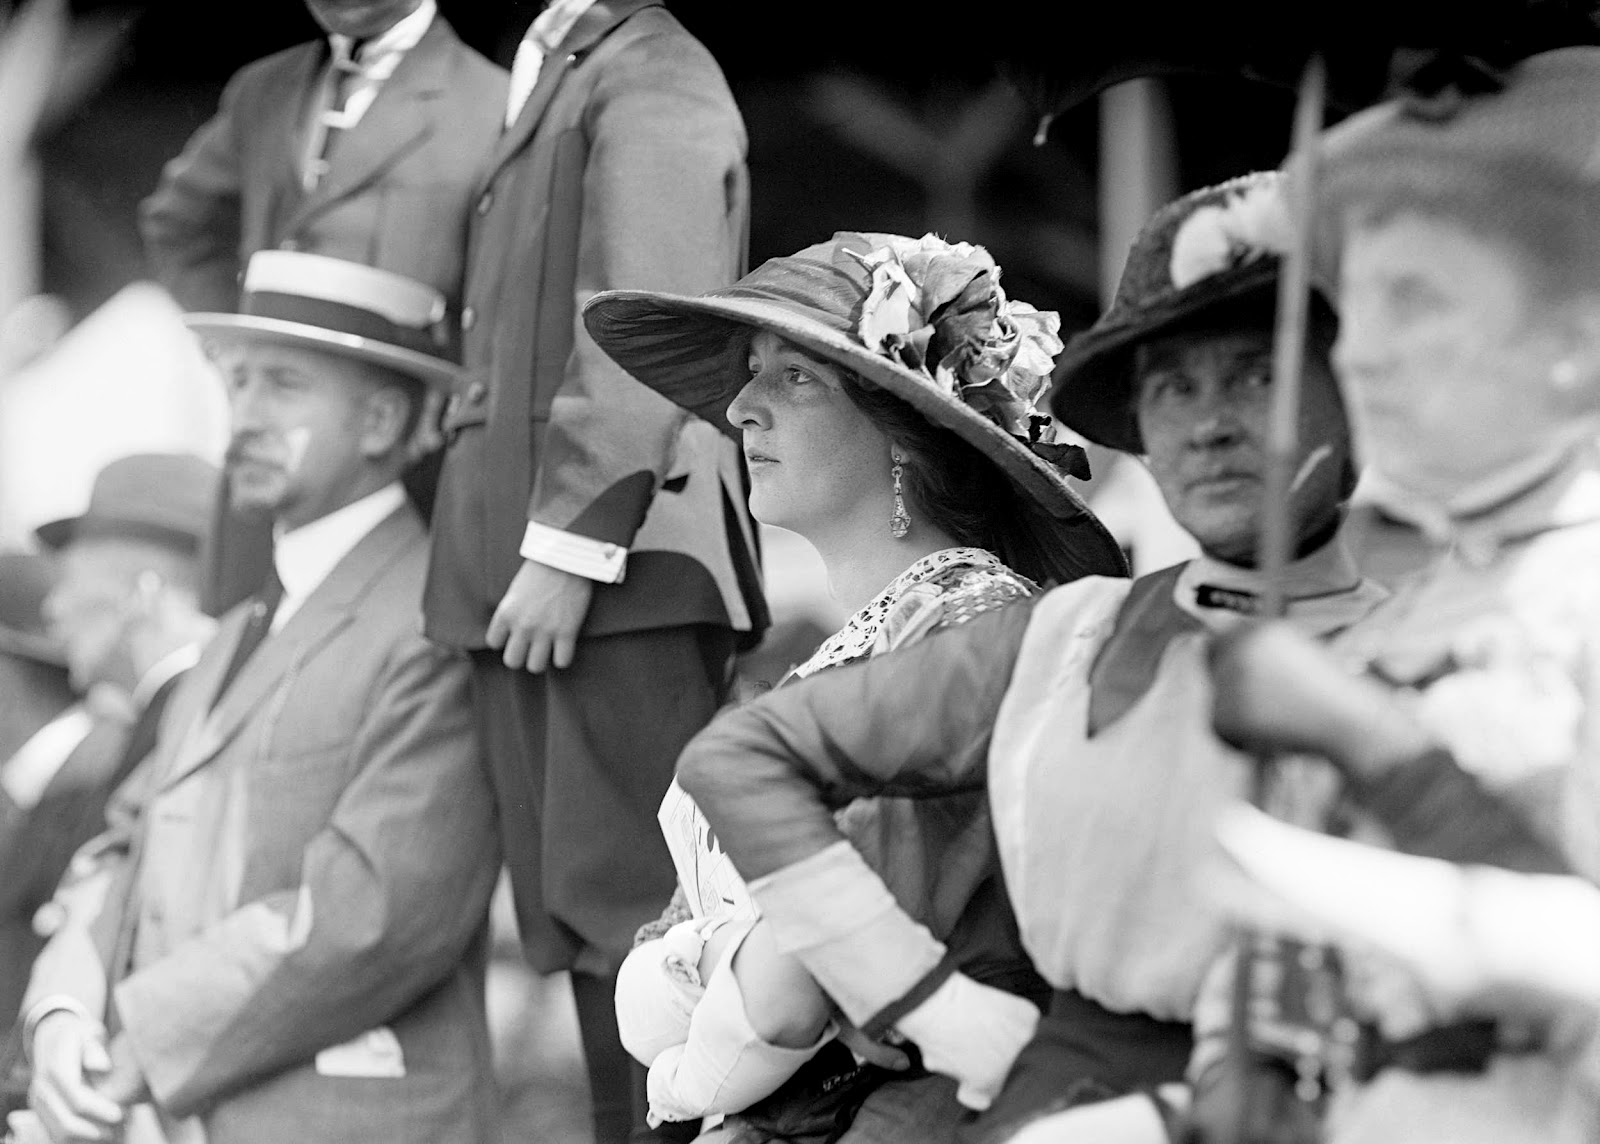 Harris & Ewing - Miss Gladys Hinckley at the horse show, 1913.jpg